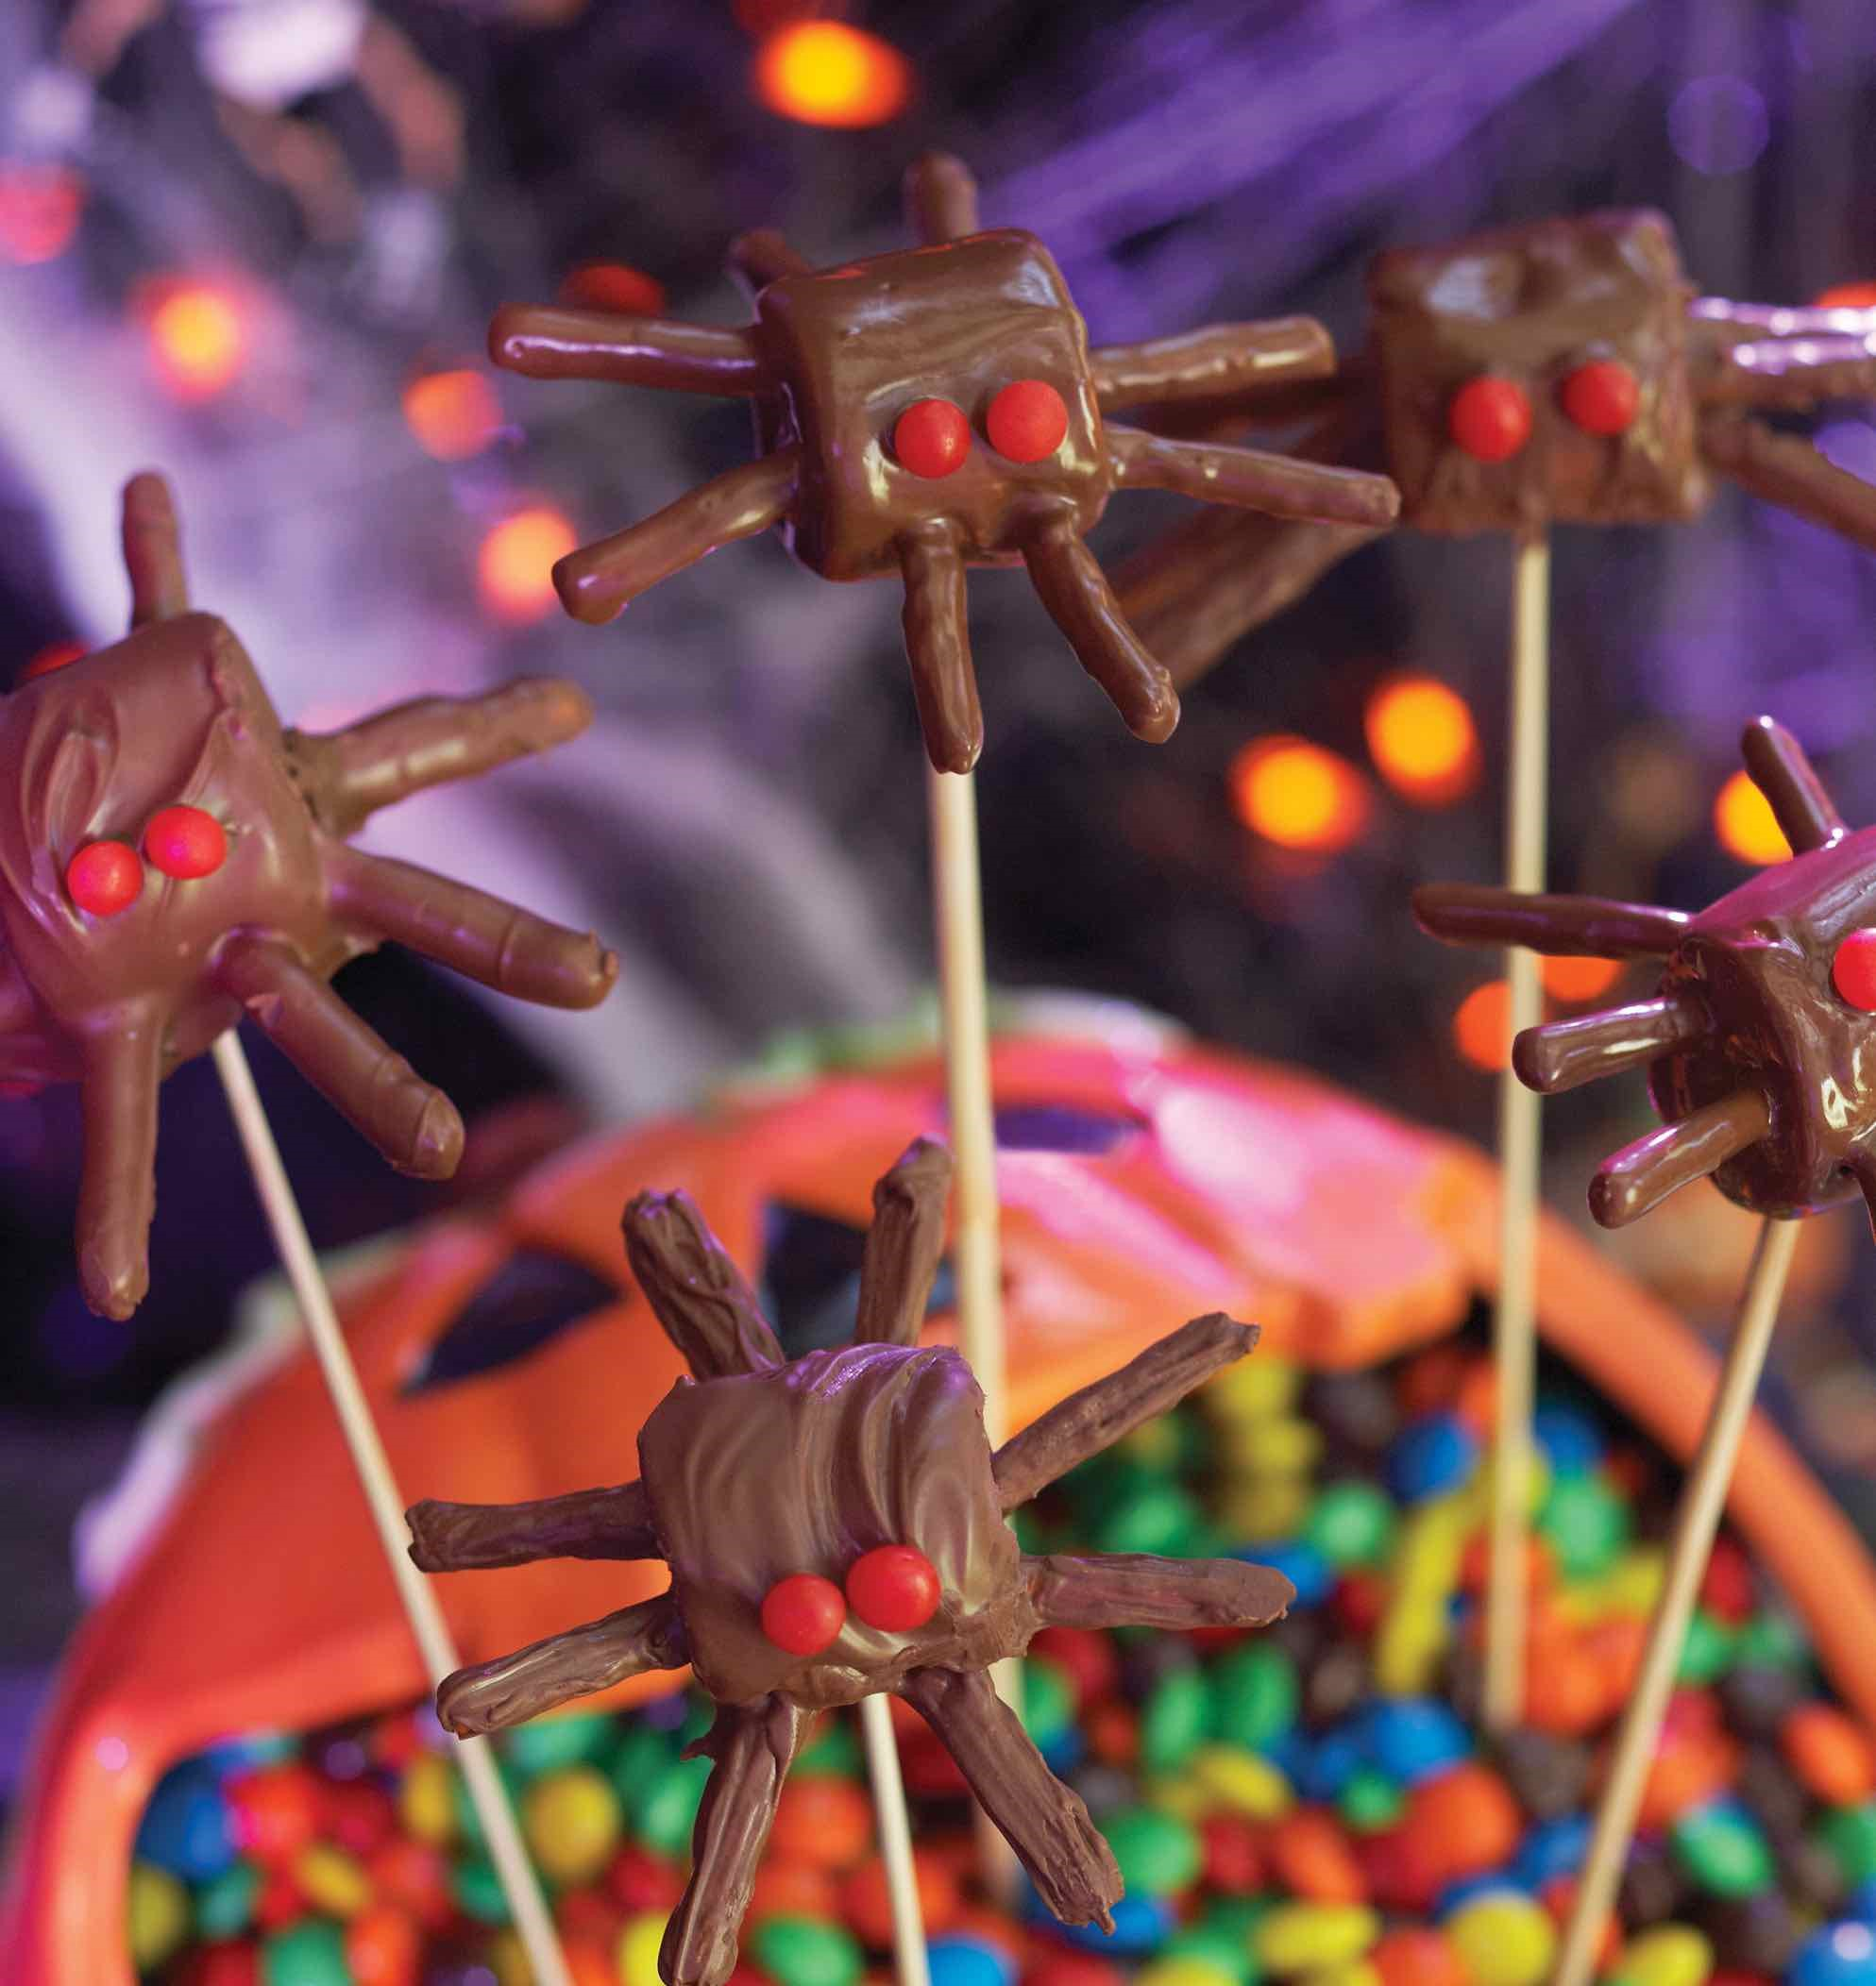 Chocolate Covered Marshmallows and Stick Pretzels Make a Spider